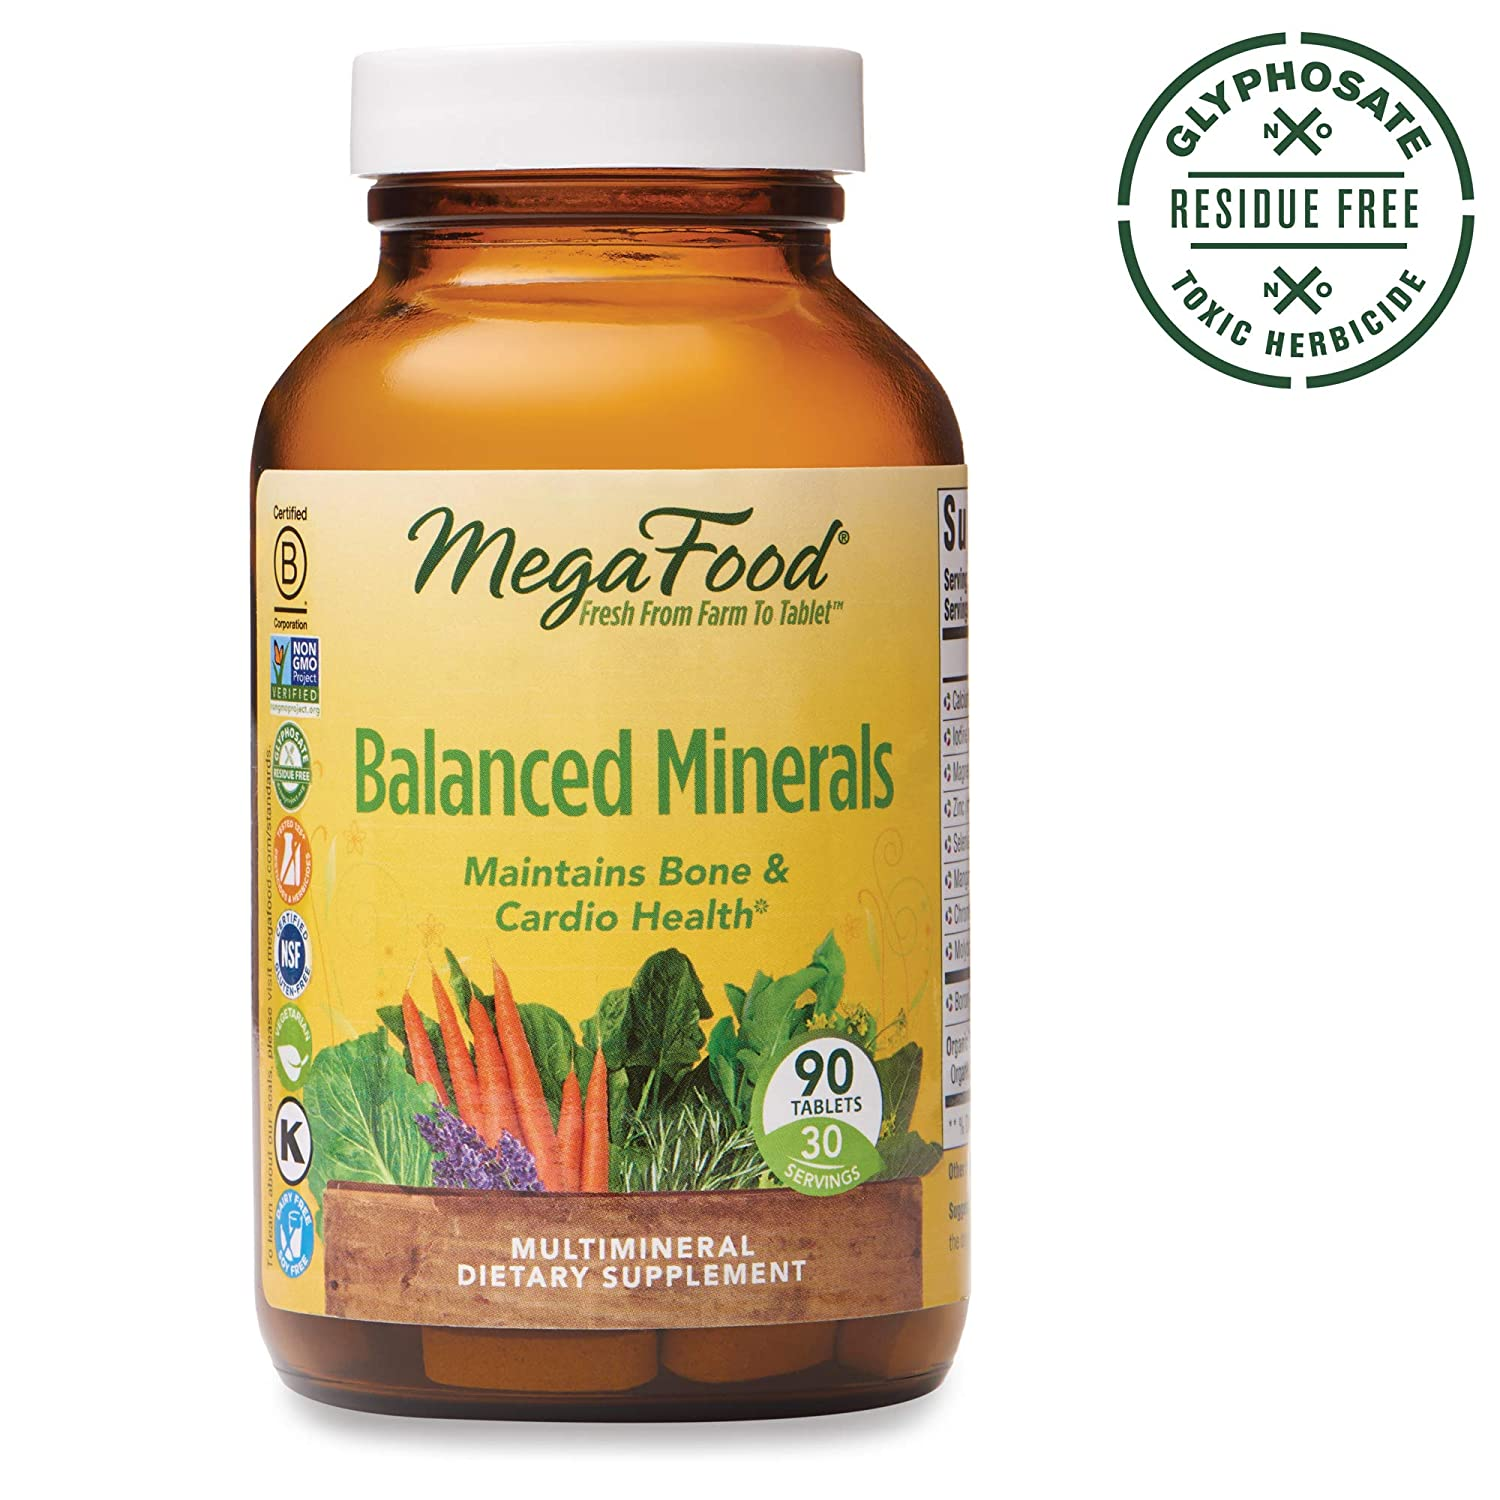 MegaFood, Balanced Minerals, Helps Maintain Bone and Cardiovascular Health, Multivitamin Supplement, Gluten Free, Vegetarian, 90 Tablets 30 Servings FFP